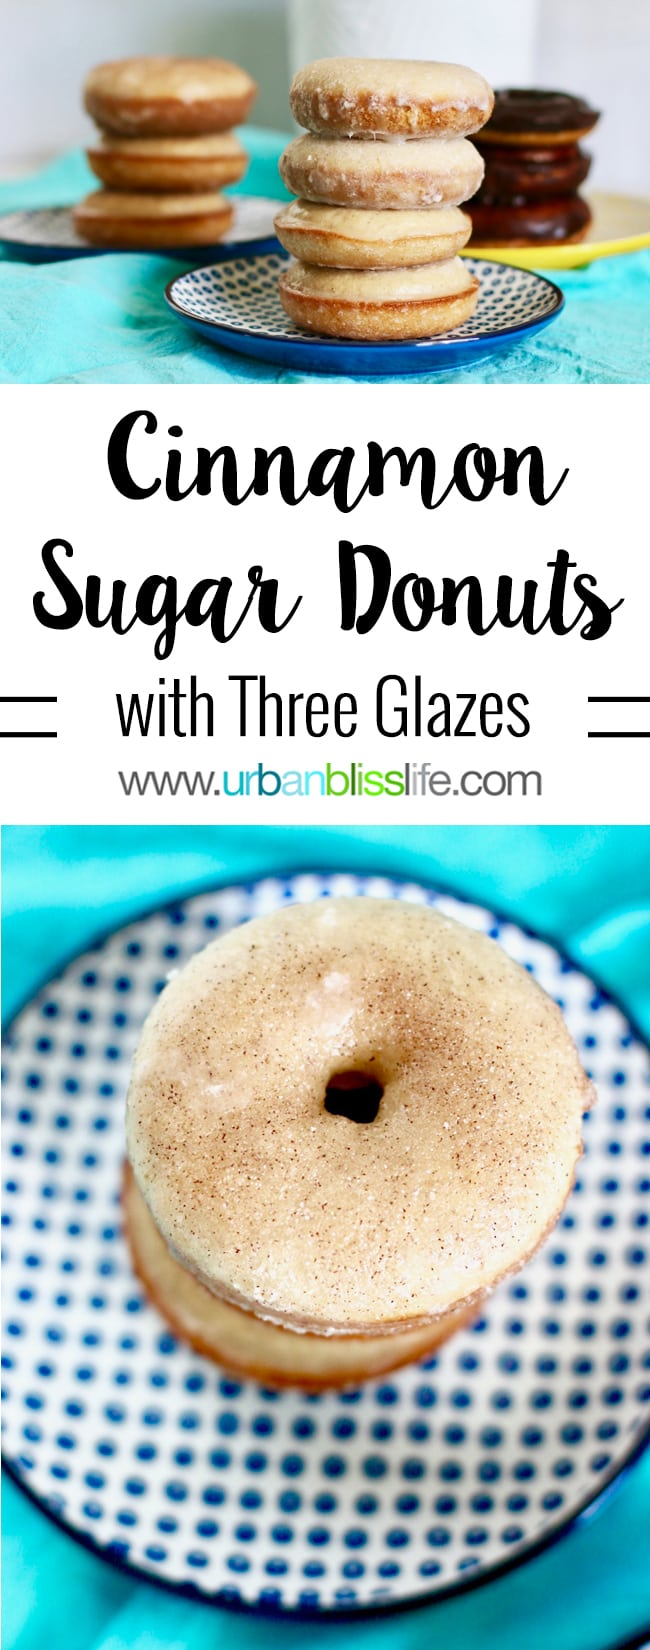 Baked Cinnamon Sugar Donuts with Three Glazes. Recipe on UrbanBlissLife.com